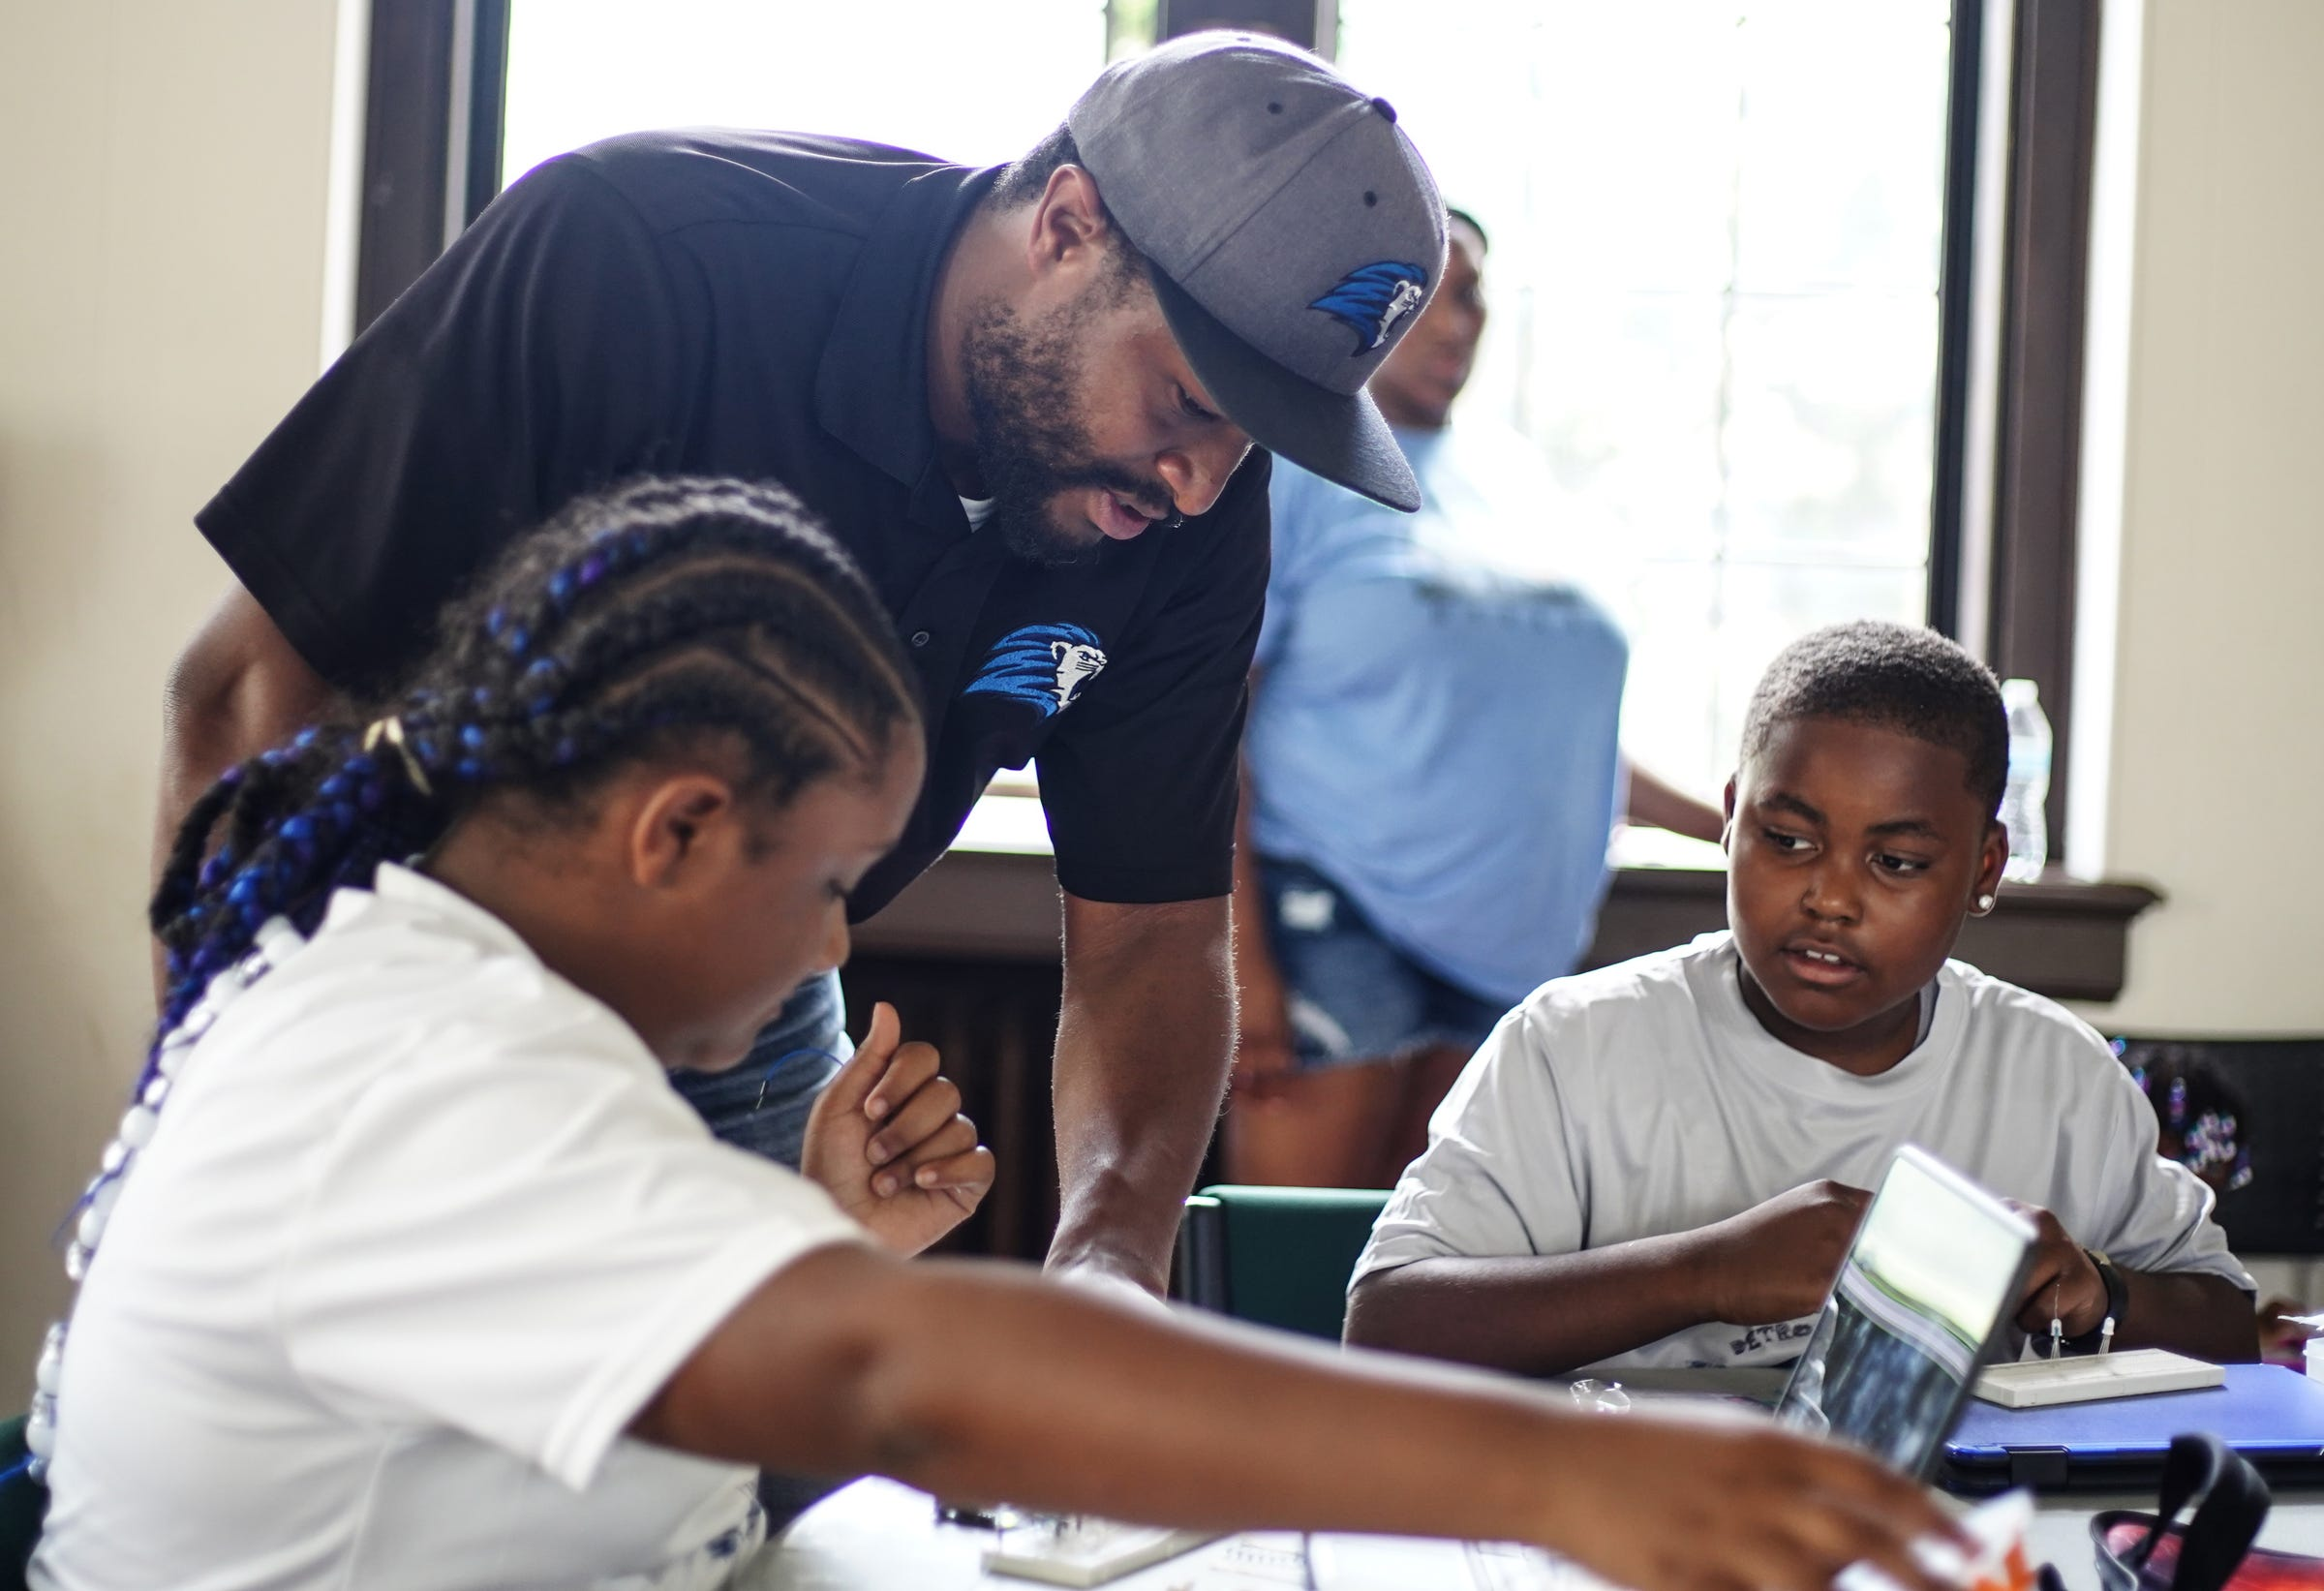 Devon Buskin, founder of Detroit City Lions watches Gabrielle Thomas, 10, of Detroit (left) and Dion Reaves, 8, of Detroit work on their robotics project at Marygrove College in Detroit on July 29, 2021. Detroit City Lions, a youth program founded by Devon Buskin is more than a youth football program. The program offers robotics classes, volleyball, musical arts along with football and cheer.